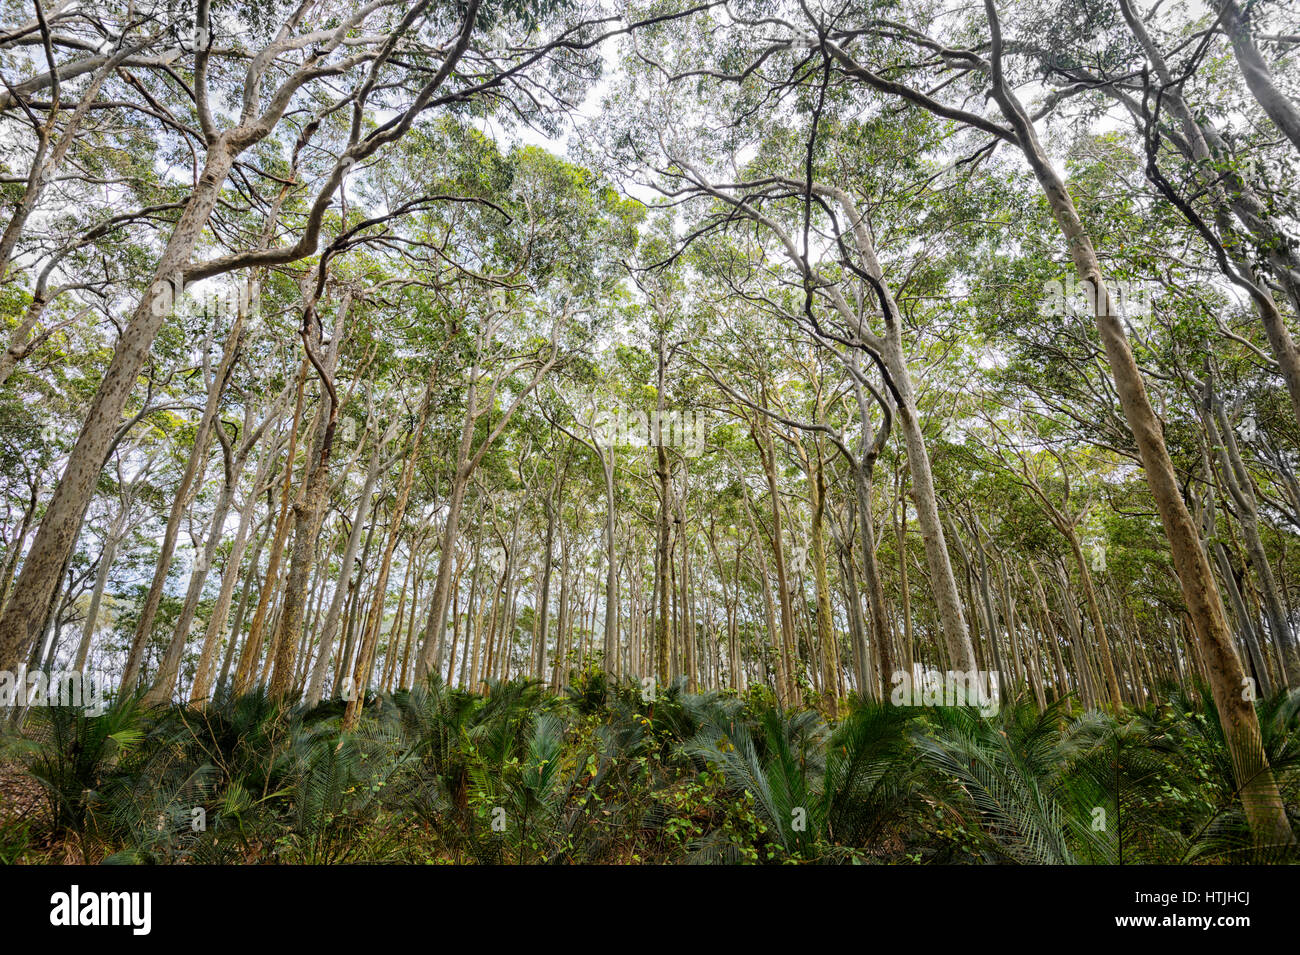 Forest of Spotted Gum Trees (Eucalyptus maculata) by Brou Lake, Sapphire Coast, New South Wales, NSW, Australia - Stock Image